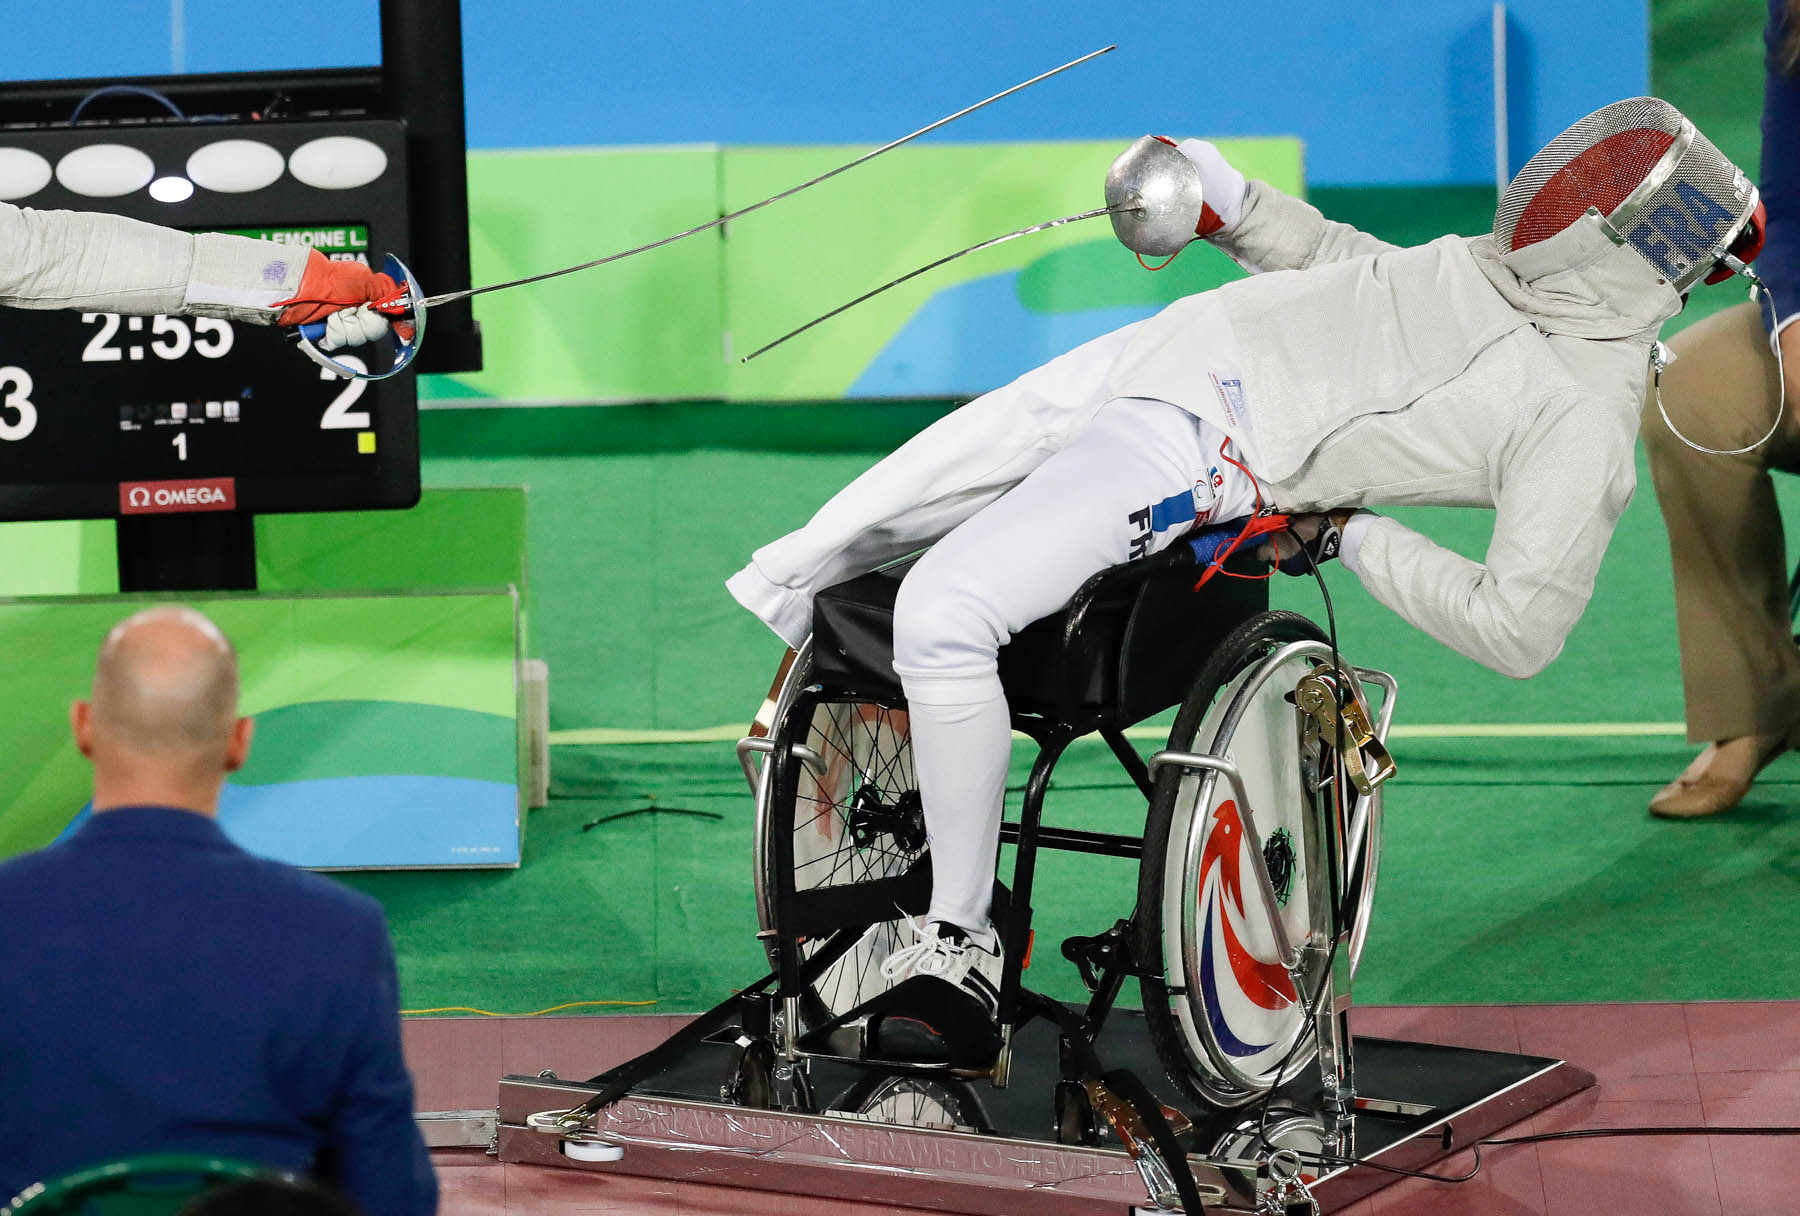 Fencer in wheelchair twisting to avoid saber (© AP Images)